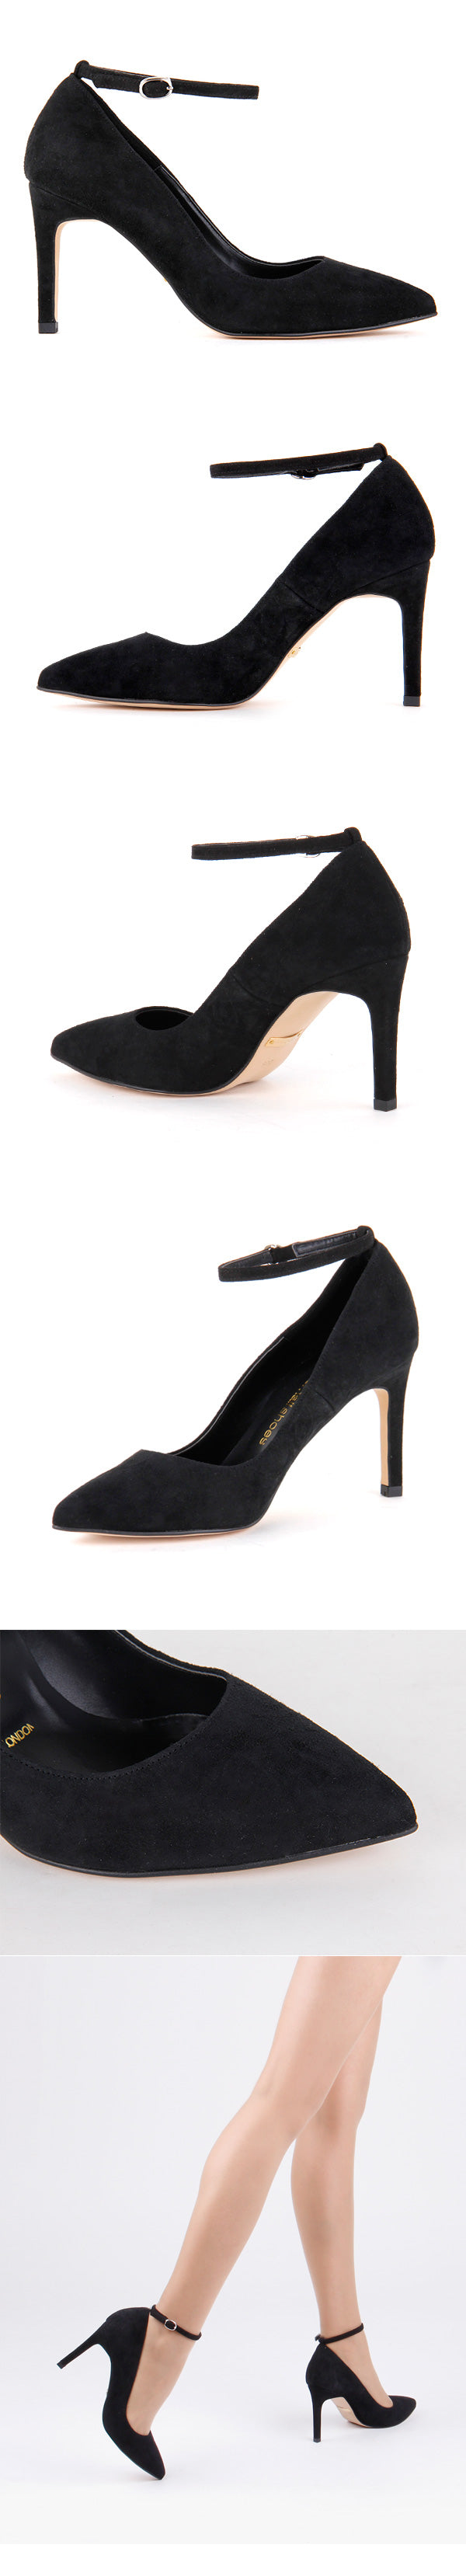 *ELLA - ankle strap, black, 9cm size UK 2